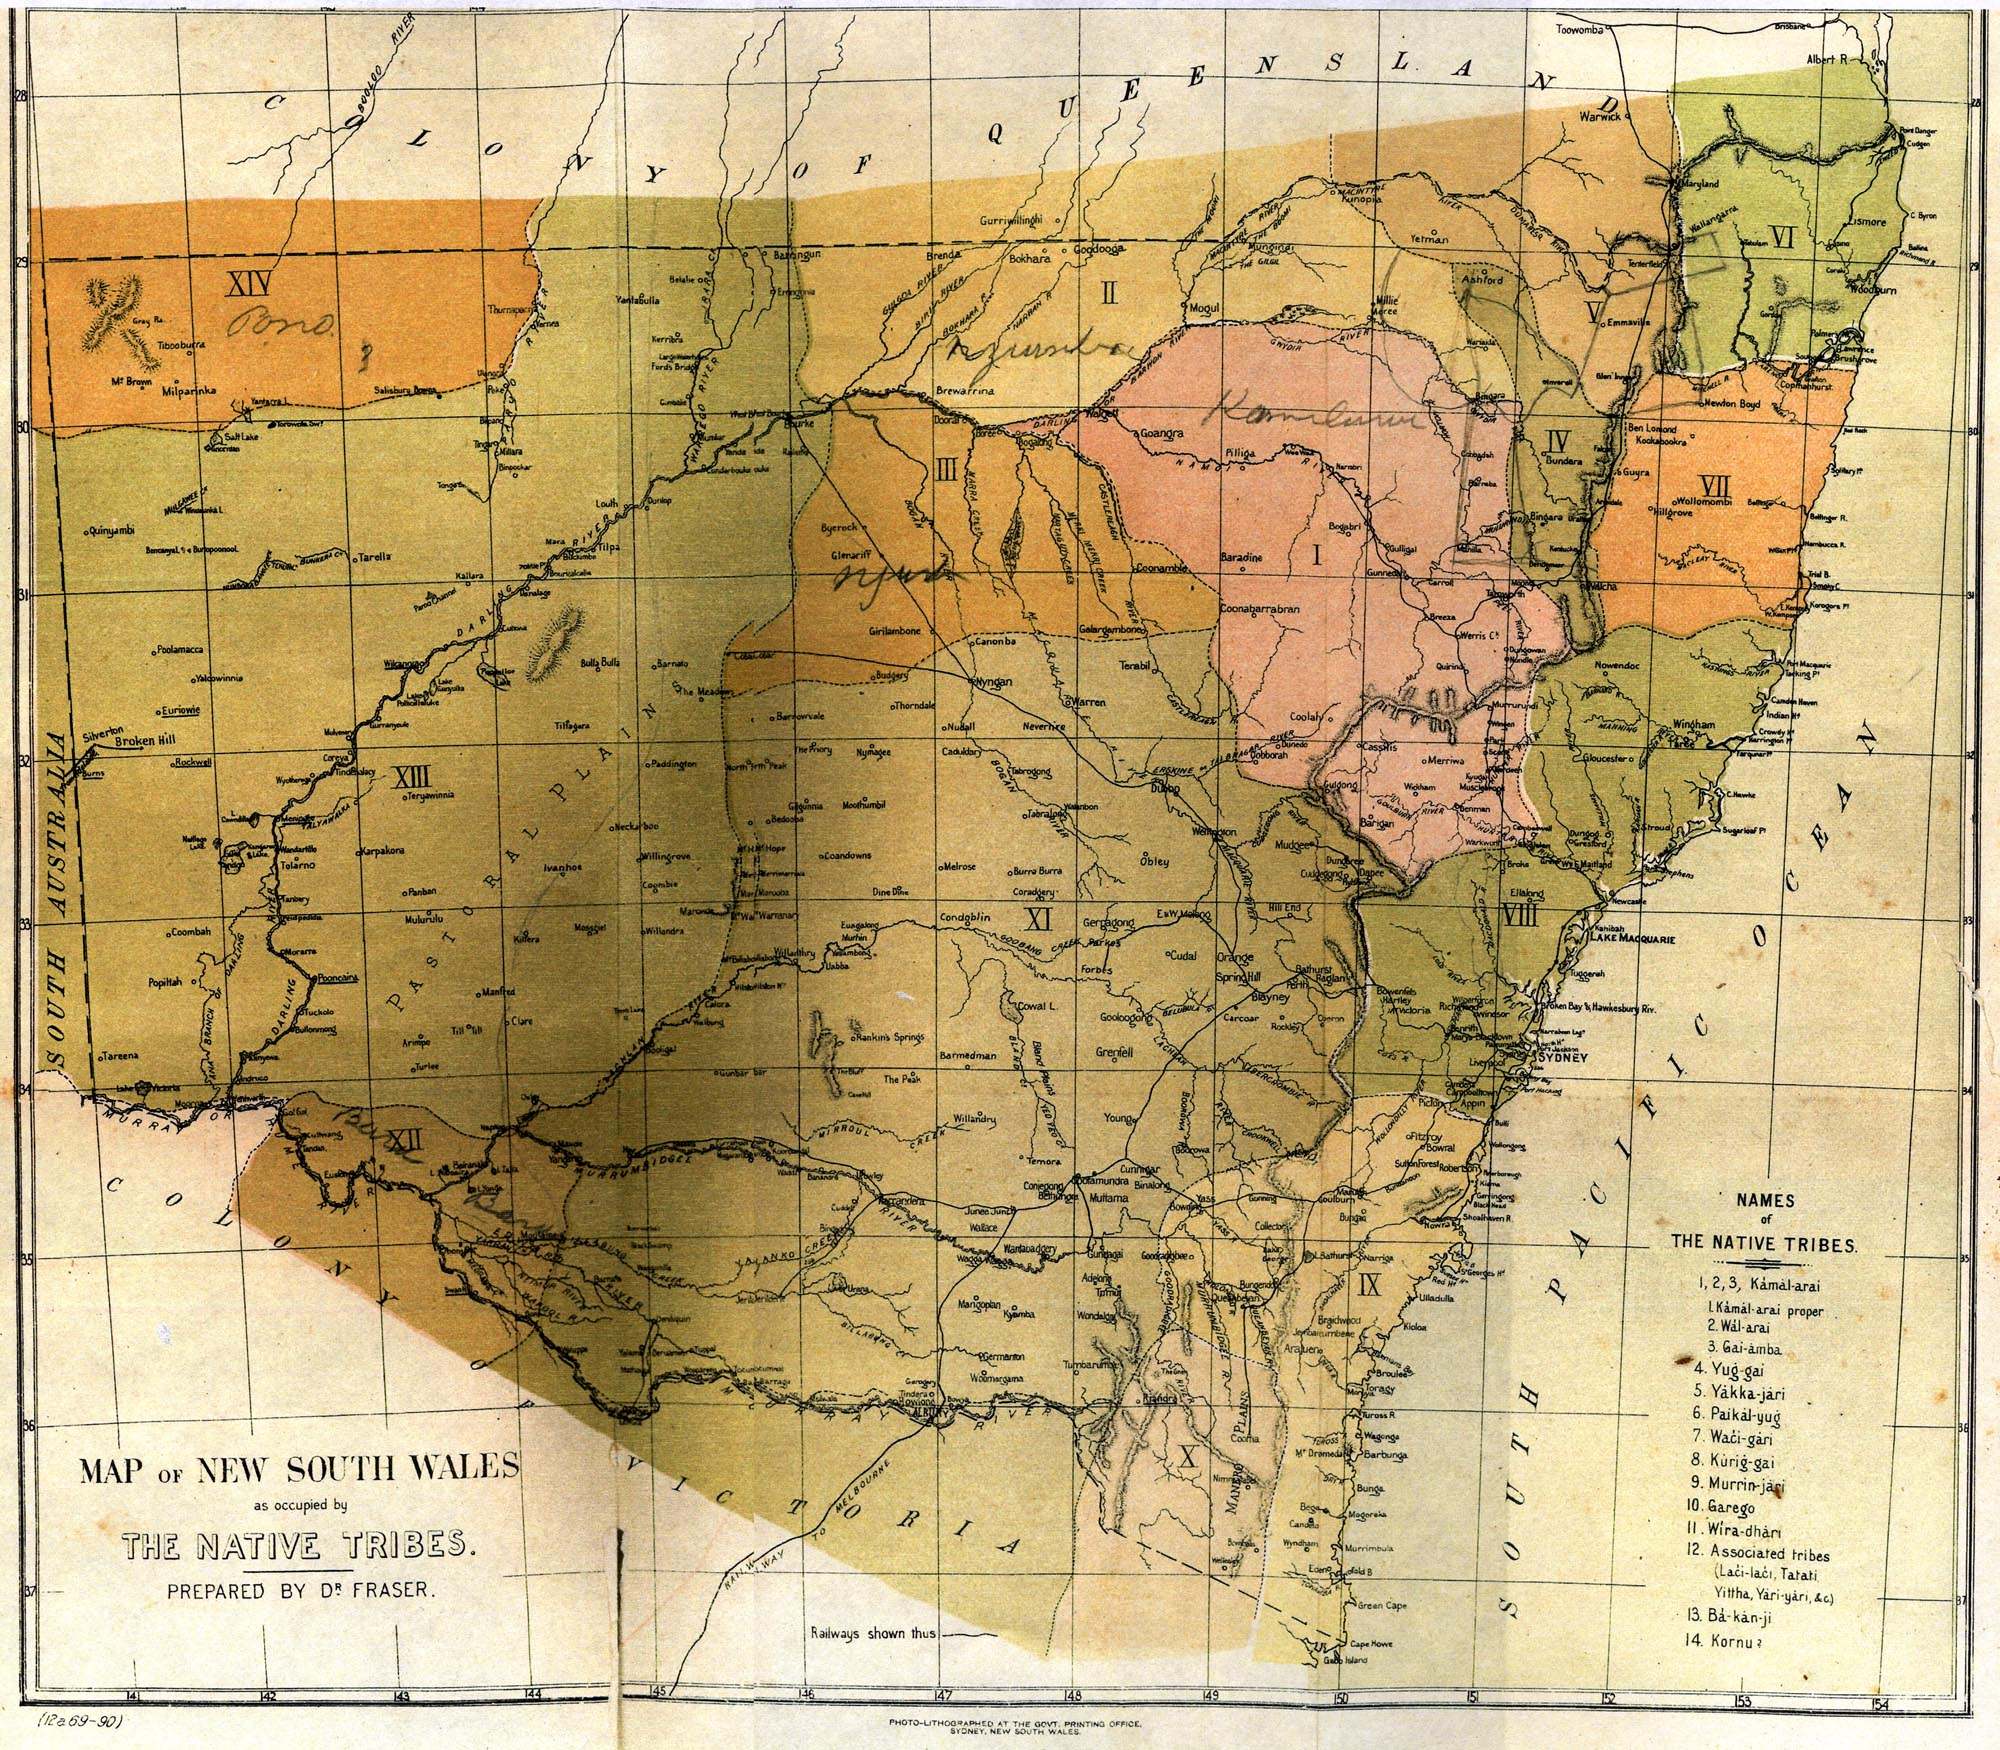 Map of New South Wales as occupied by The Native Tribes. Prepared by Dr John Fraser